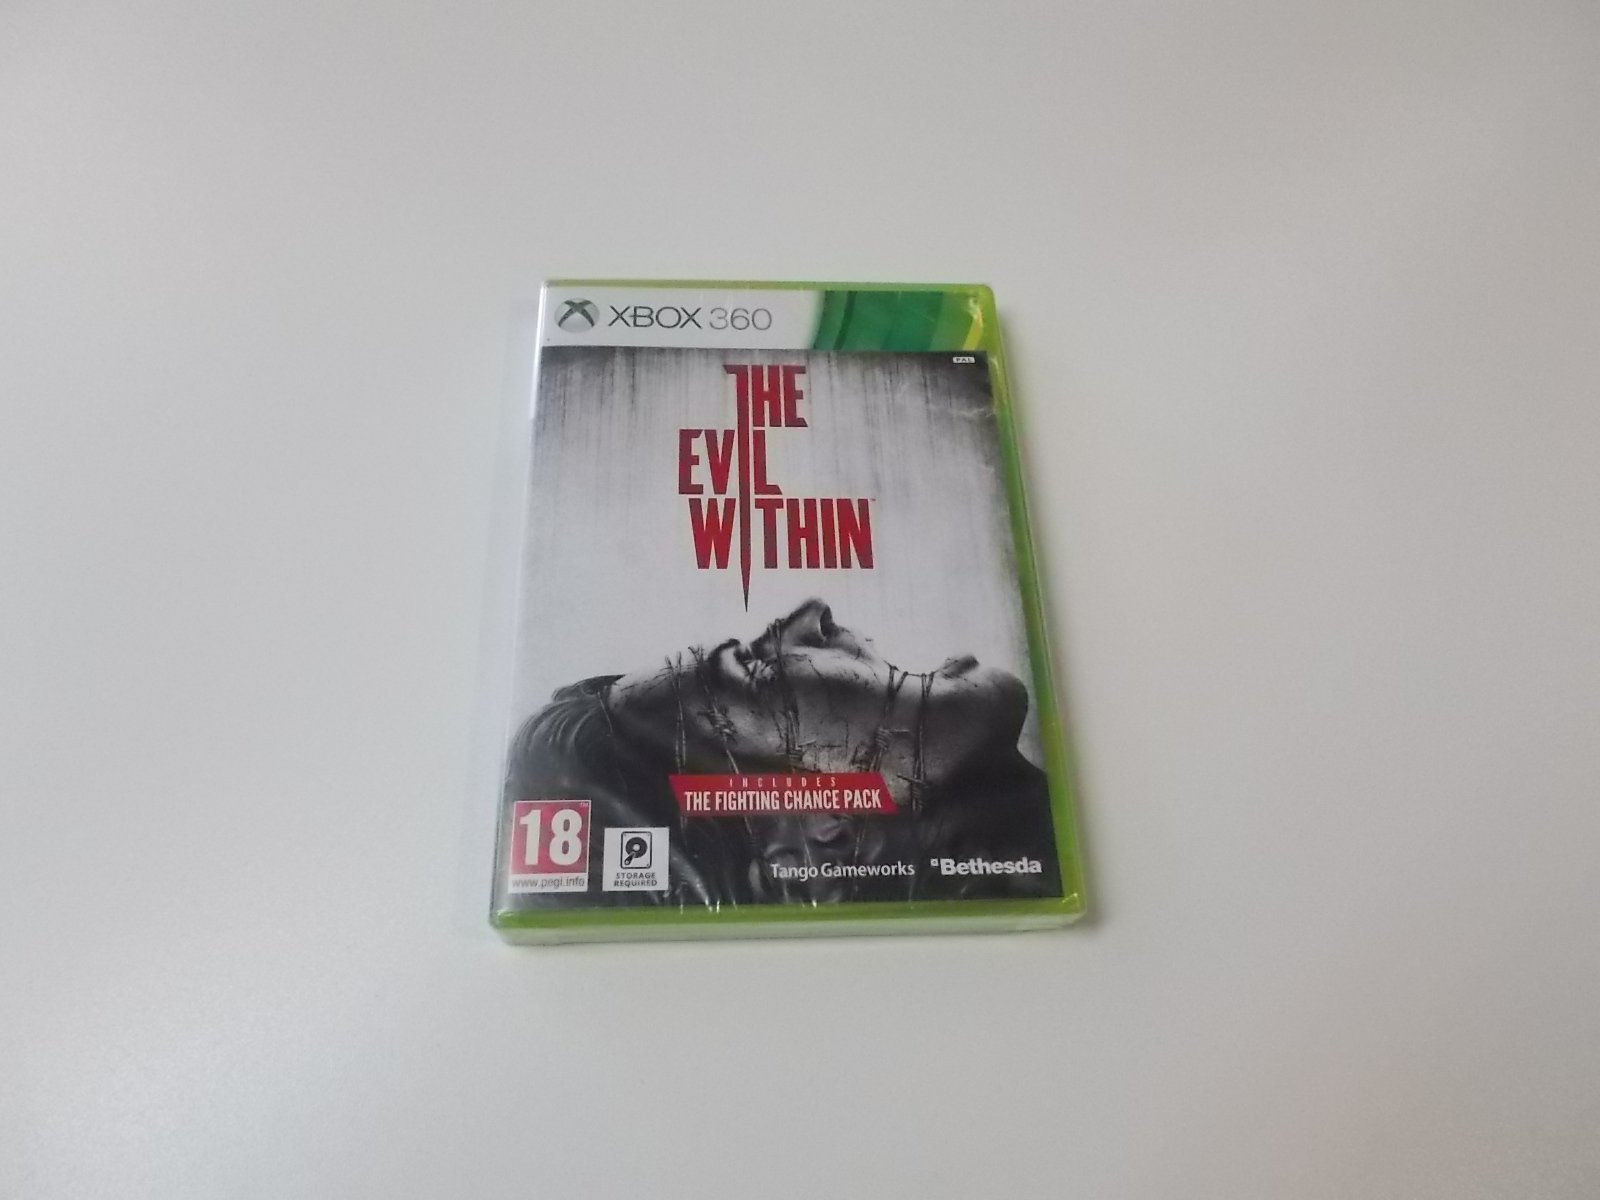 The Evil Within - GRA Xbox 360 - Opole 0439